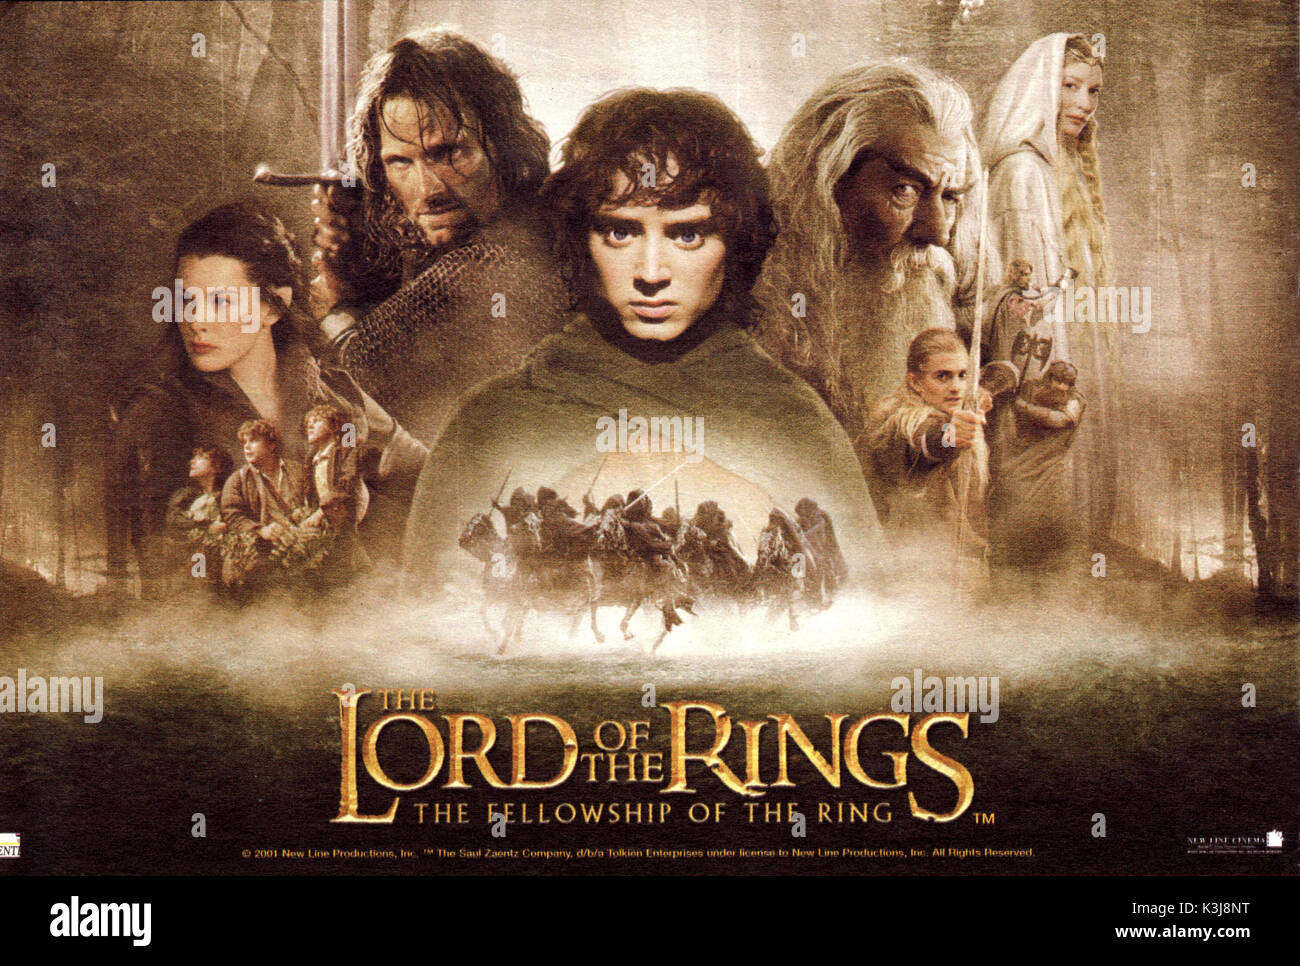 Lord of the rings dating website